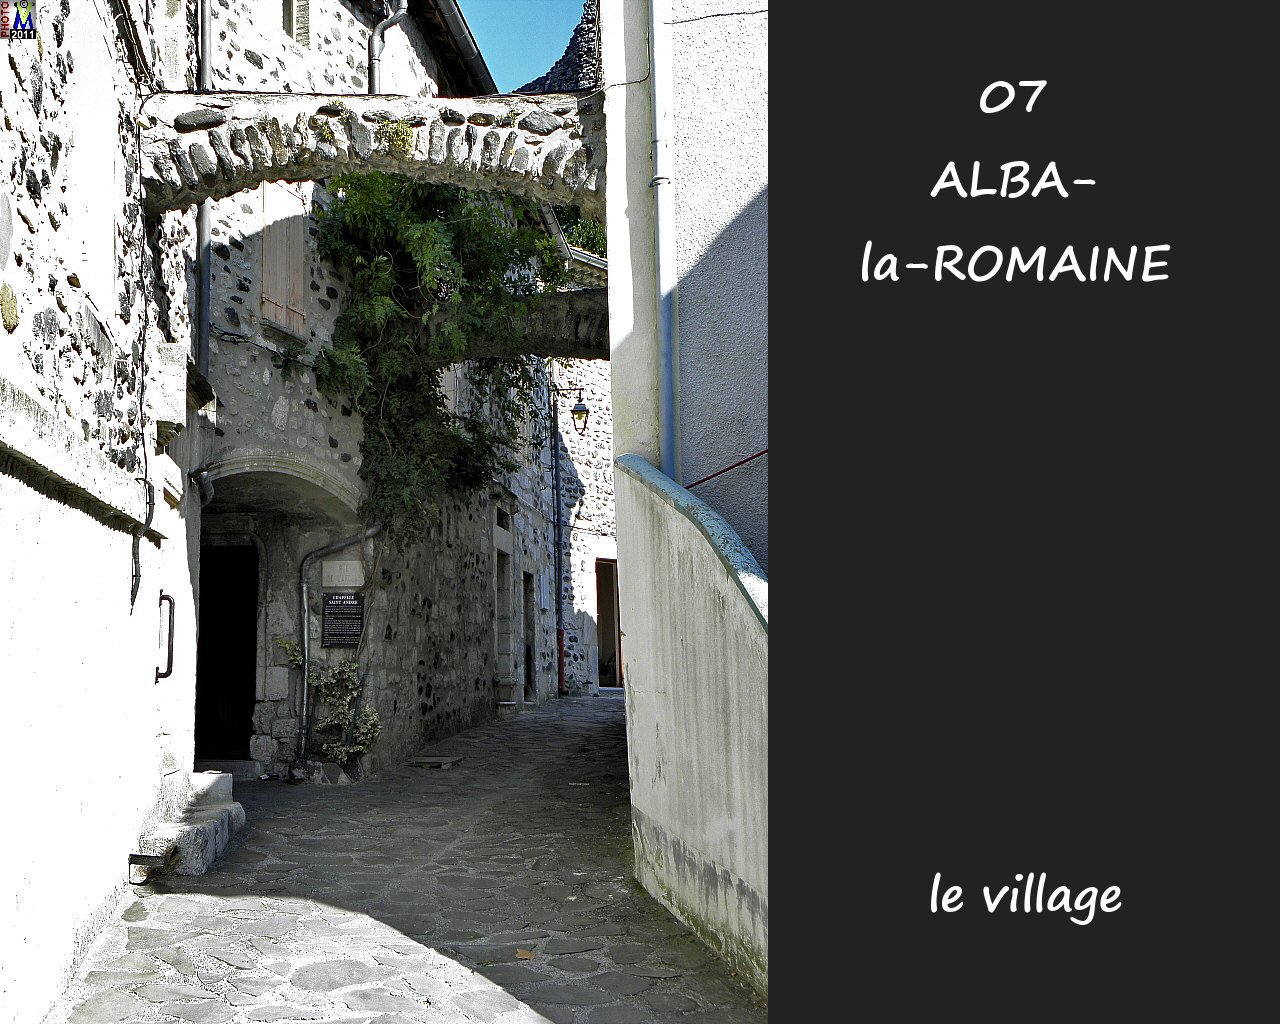 07ALBA-ROMAINE_village_118.jpg